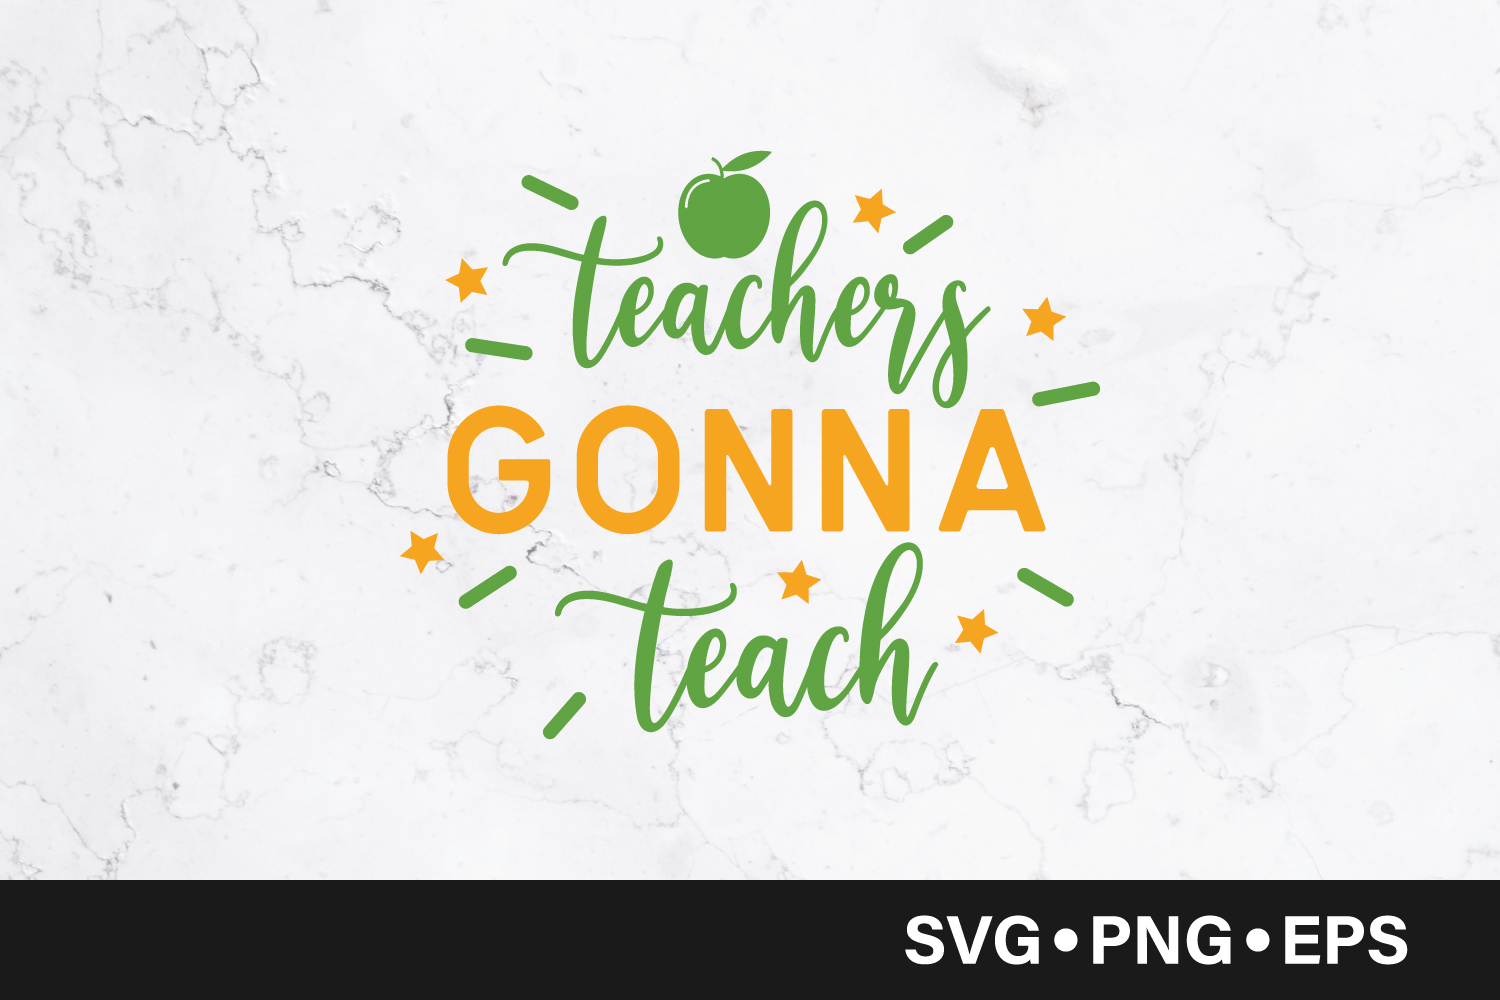 Download Free Teacher Gonna Teach Graphic By Vectorbundles Creative Fabrica for Cricut Explore, Silhouette and other cutting machines.